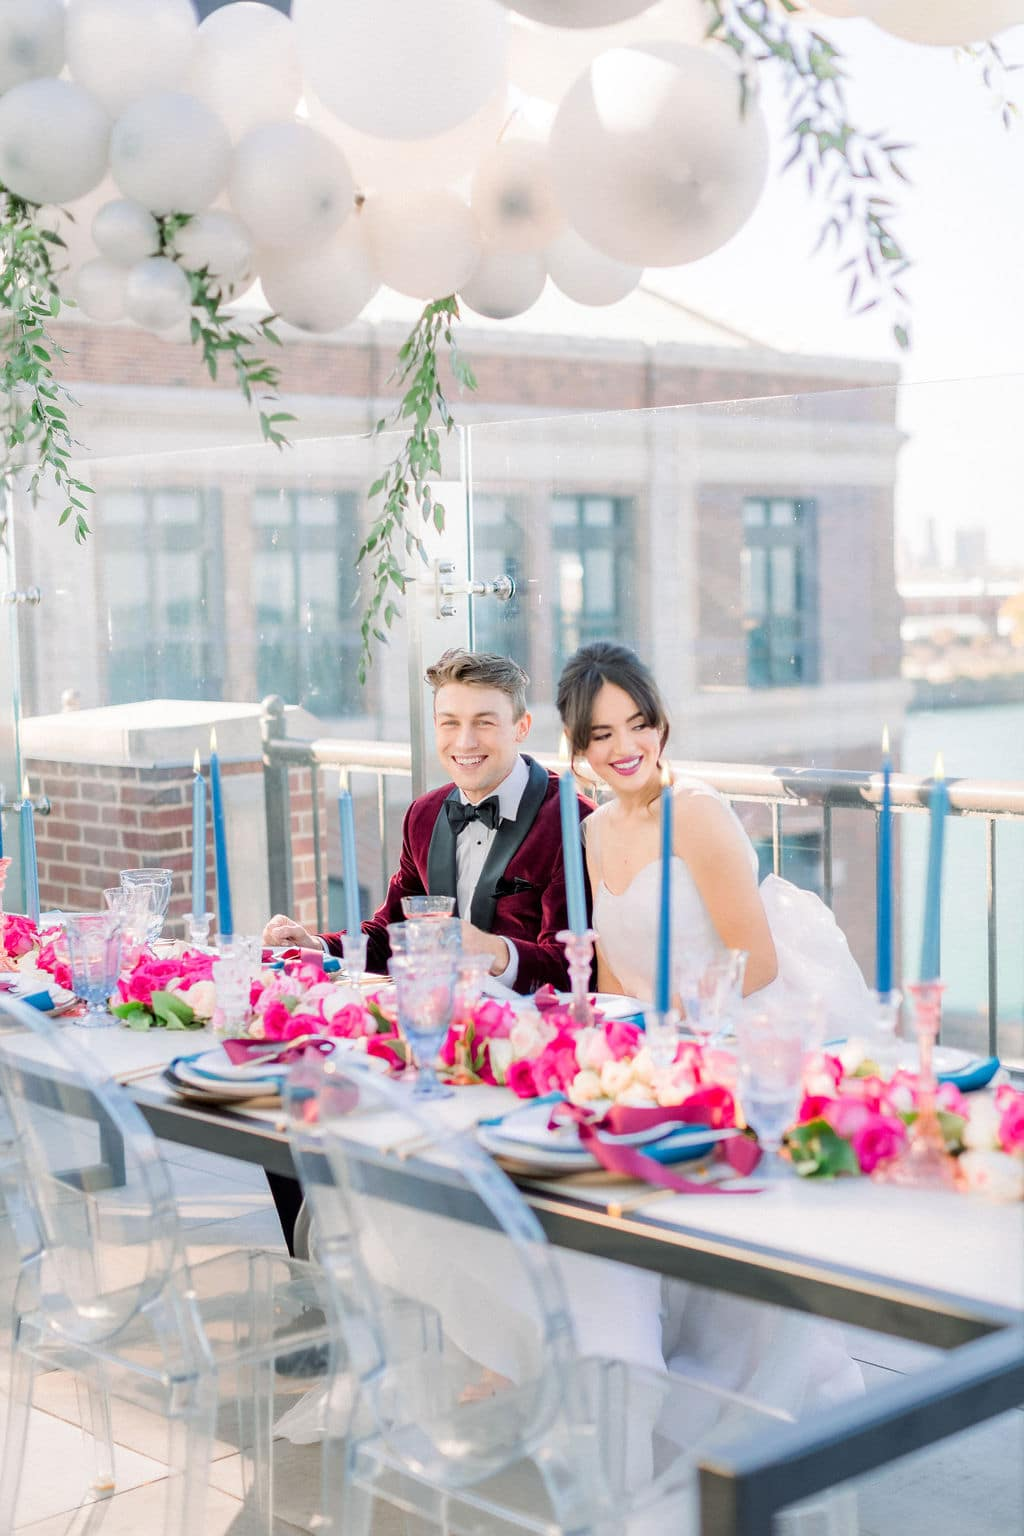 groom and bride at table with pink roses